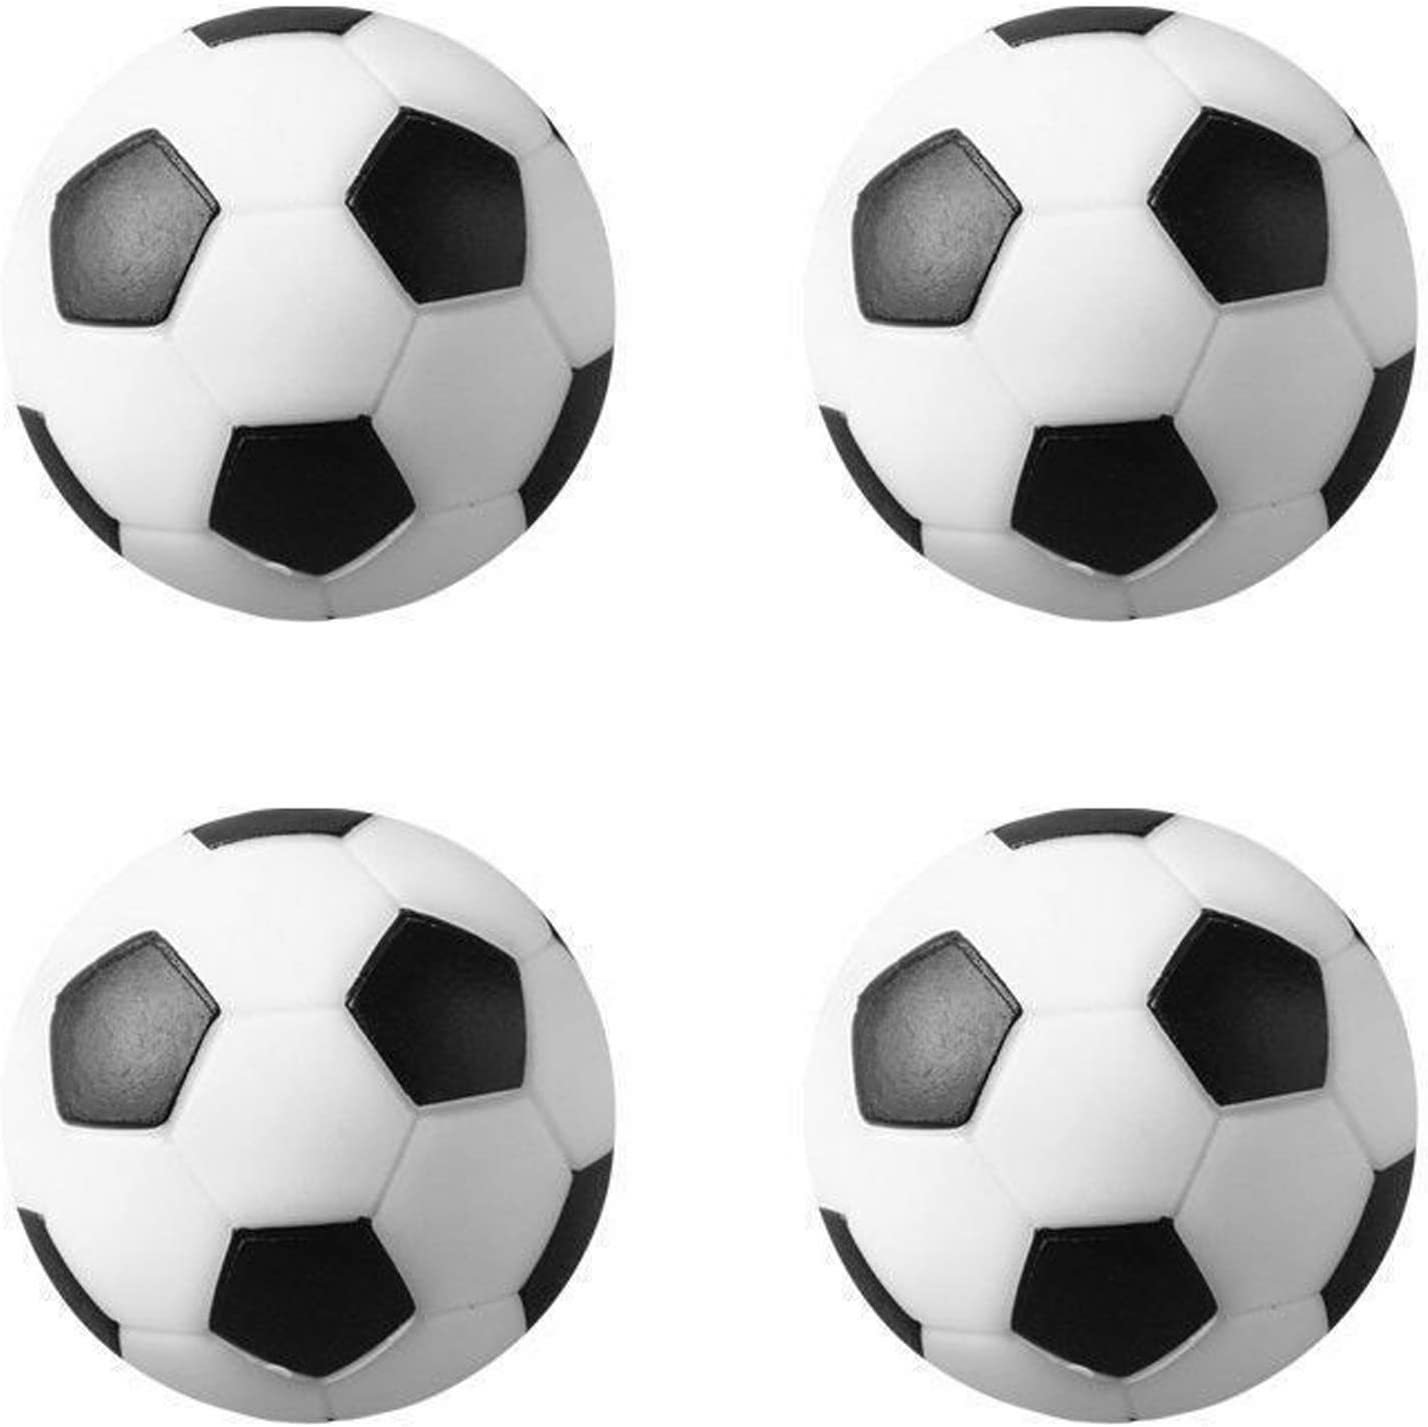 B016R64XD0 HUJI Foosballs Game/Table Soccer Balls- 36mm Regulation Size Foosball 616iGdnSF5L